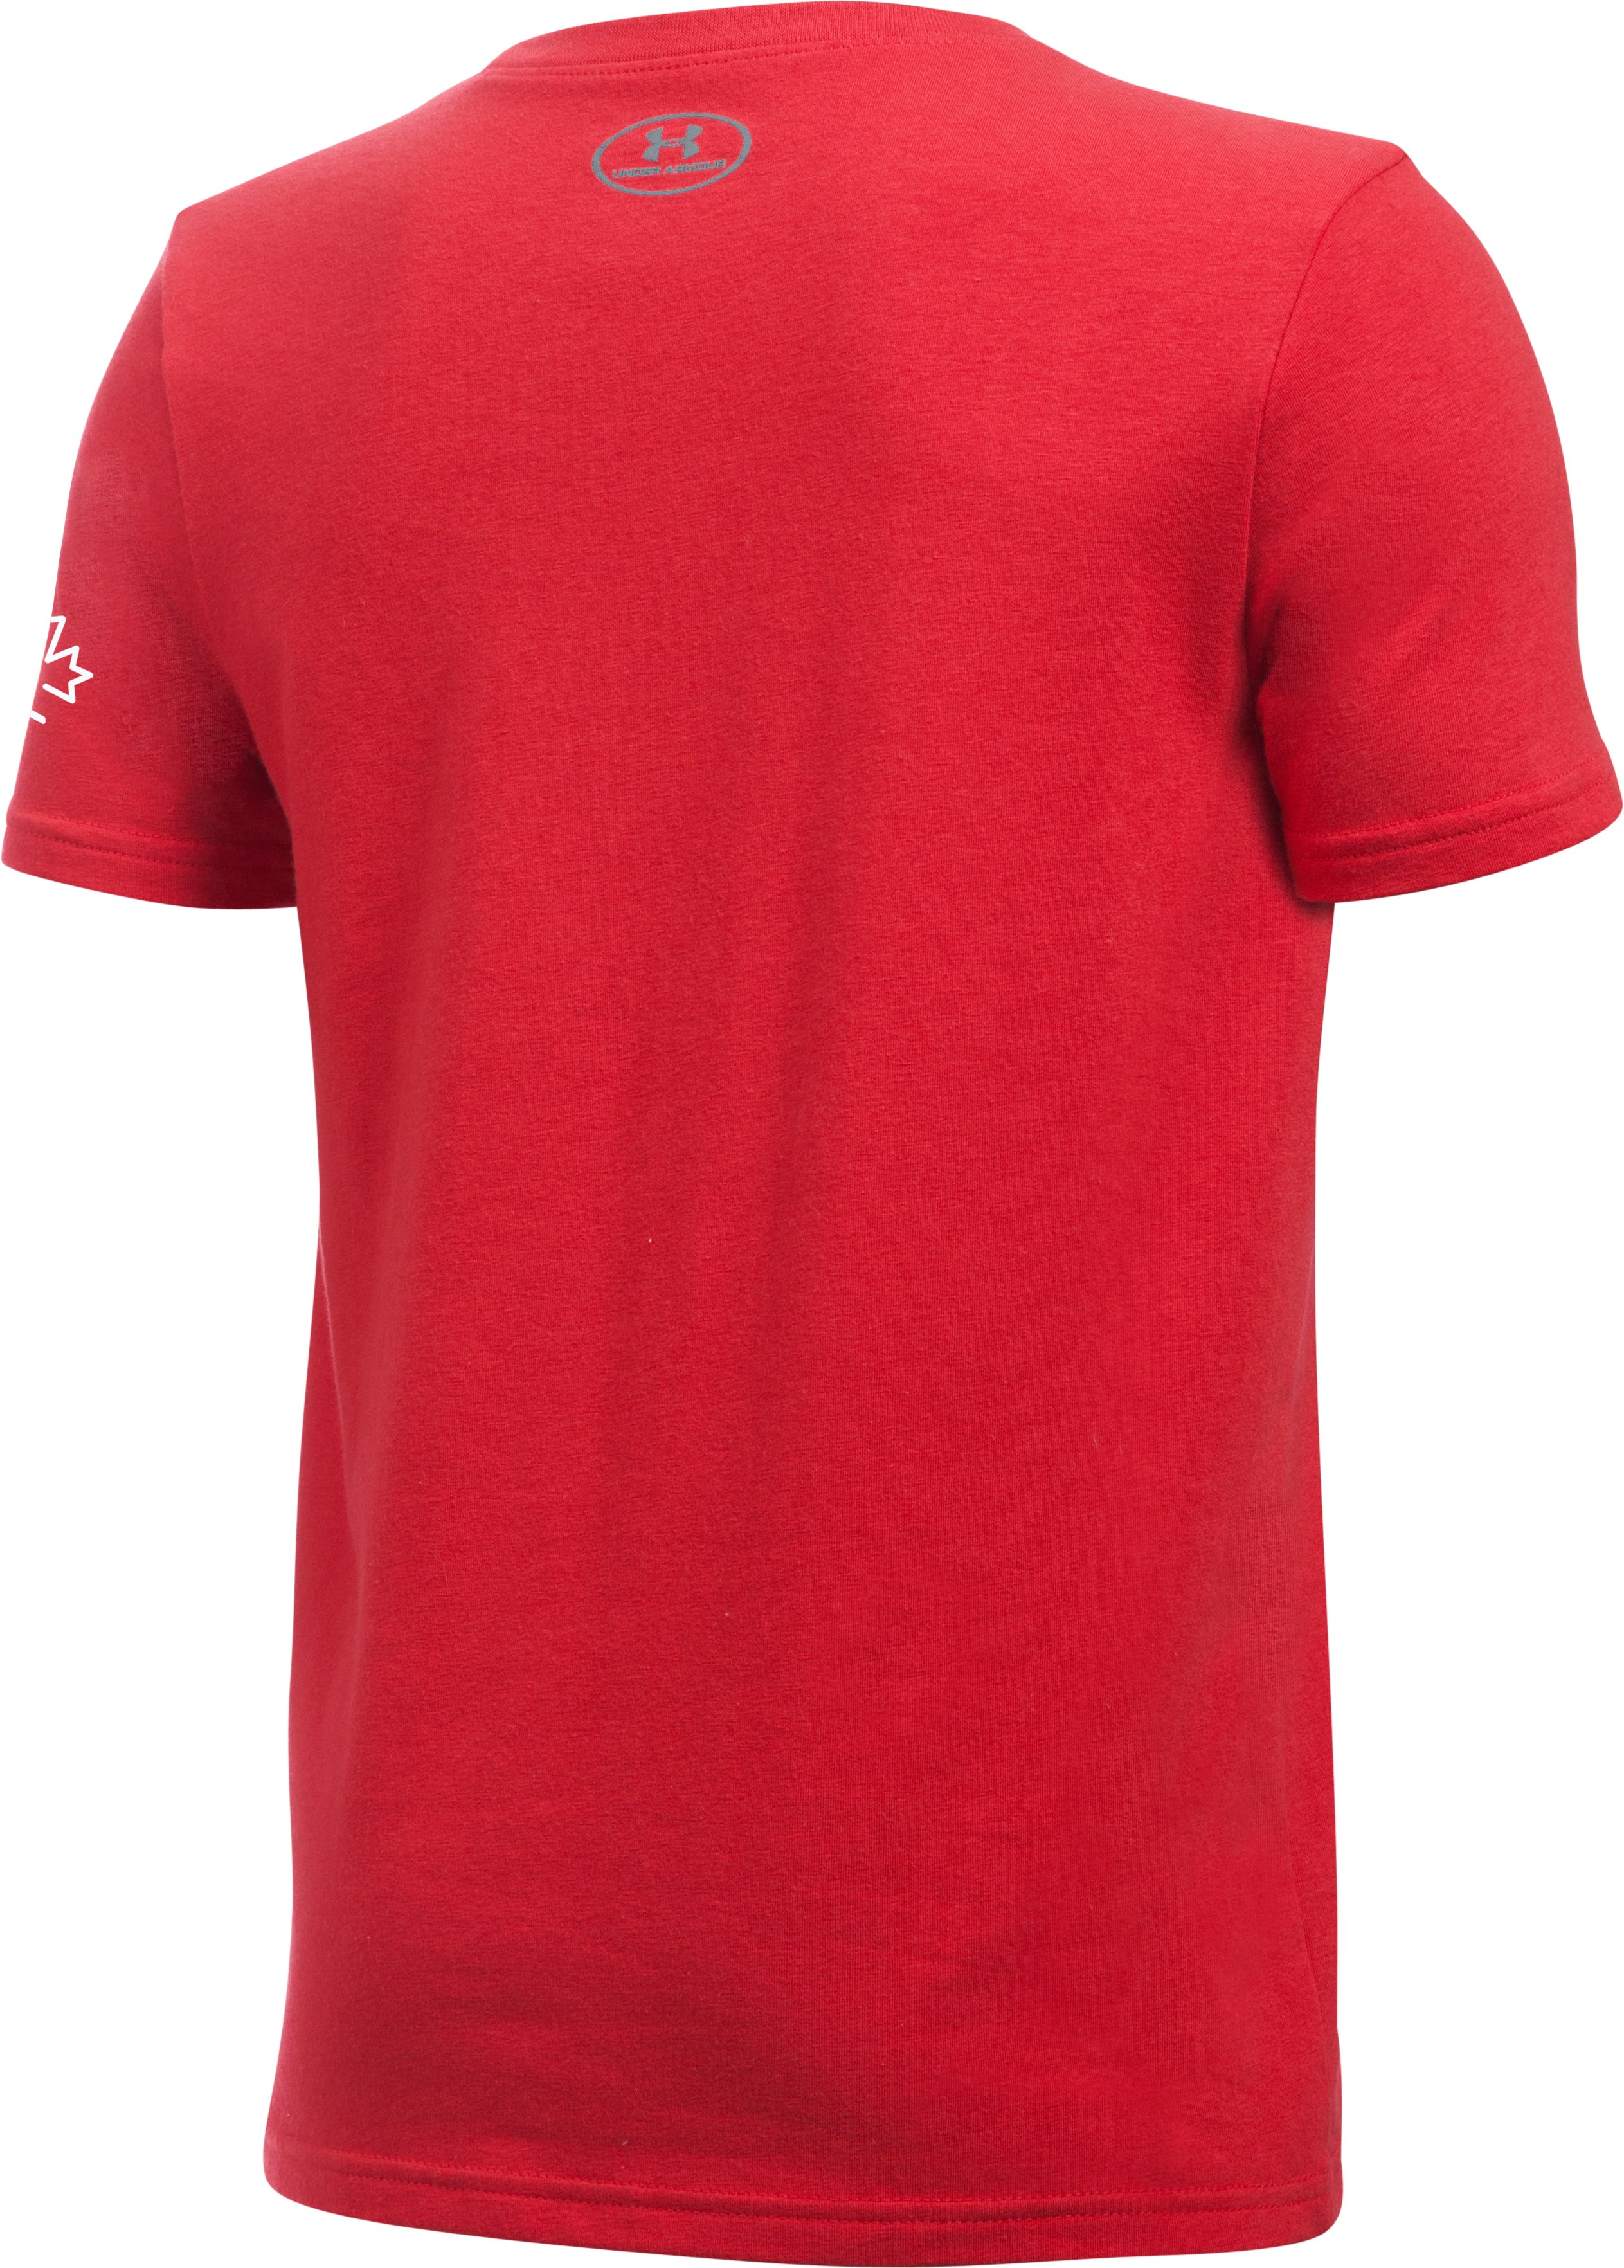 Boys' UA Hockey High Stick T-Shirt, Red,